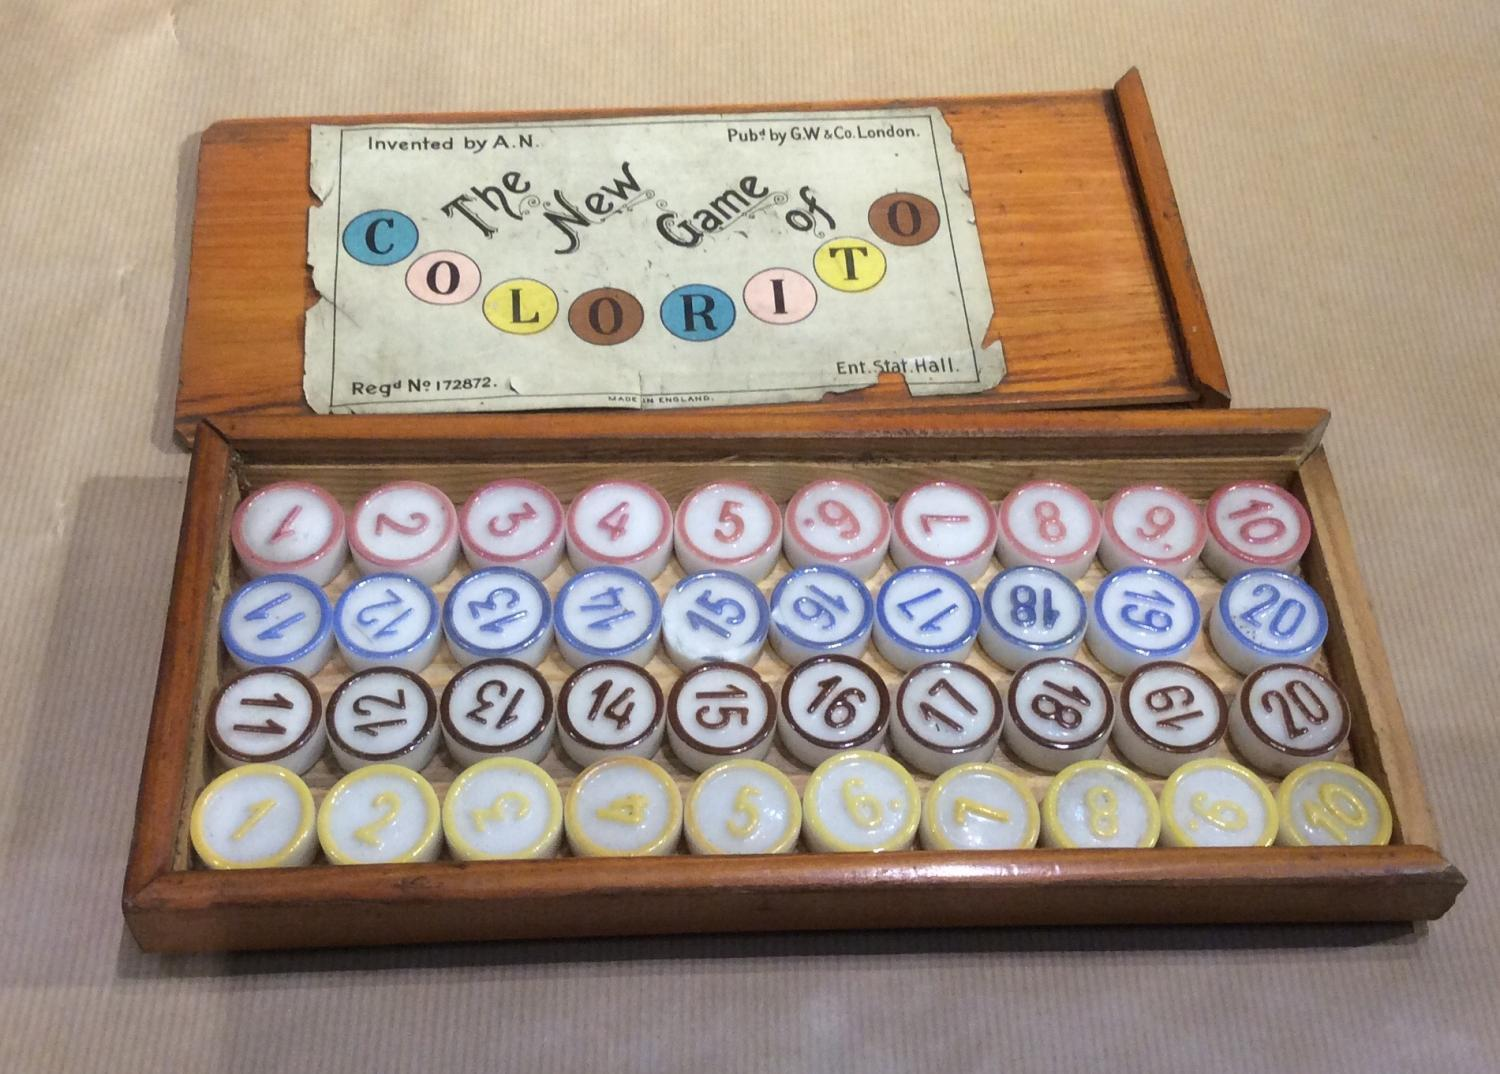 19th century game 'Colourito'